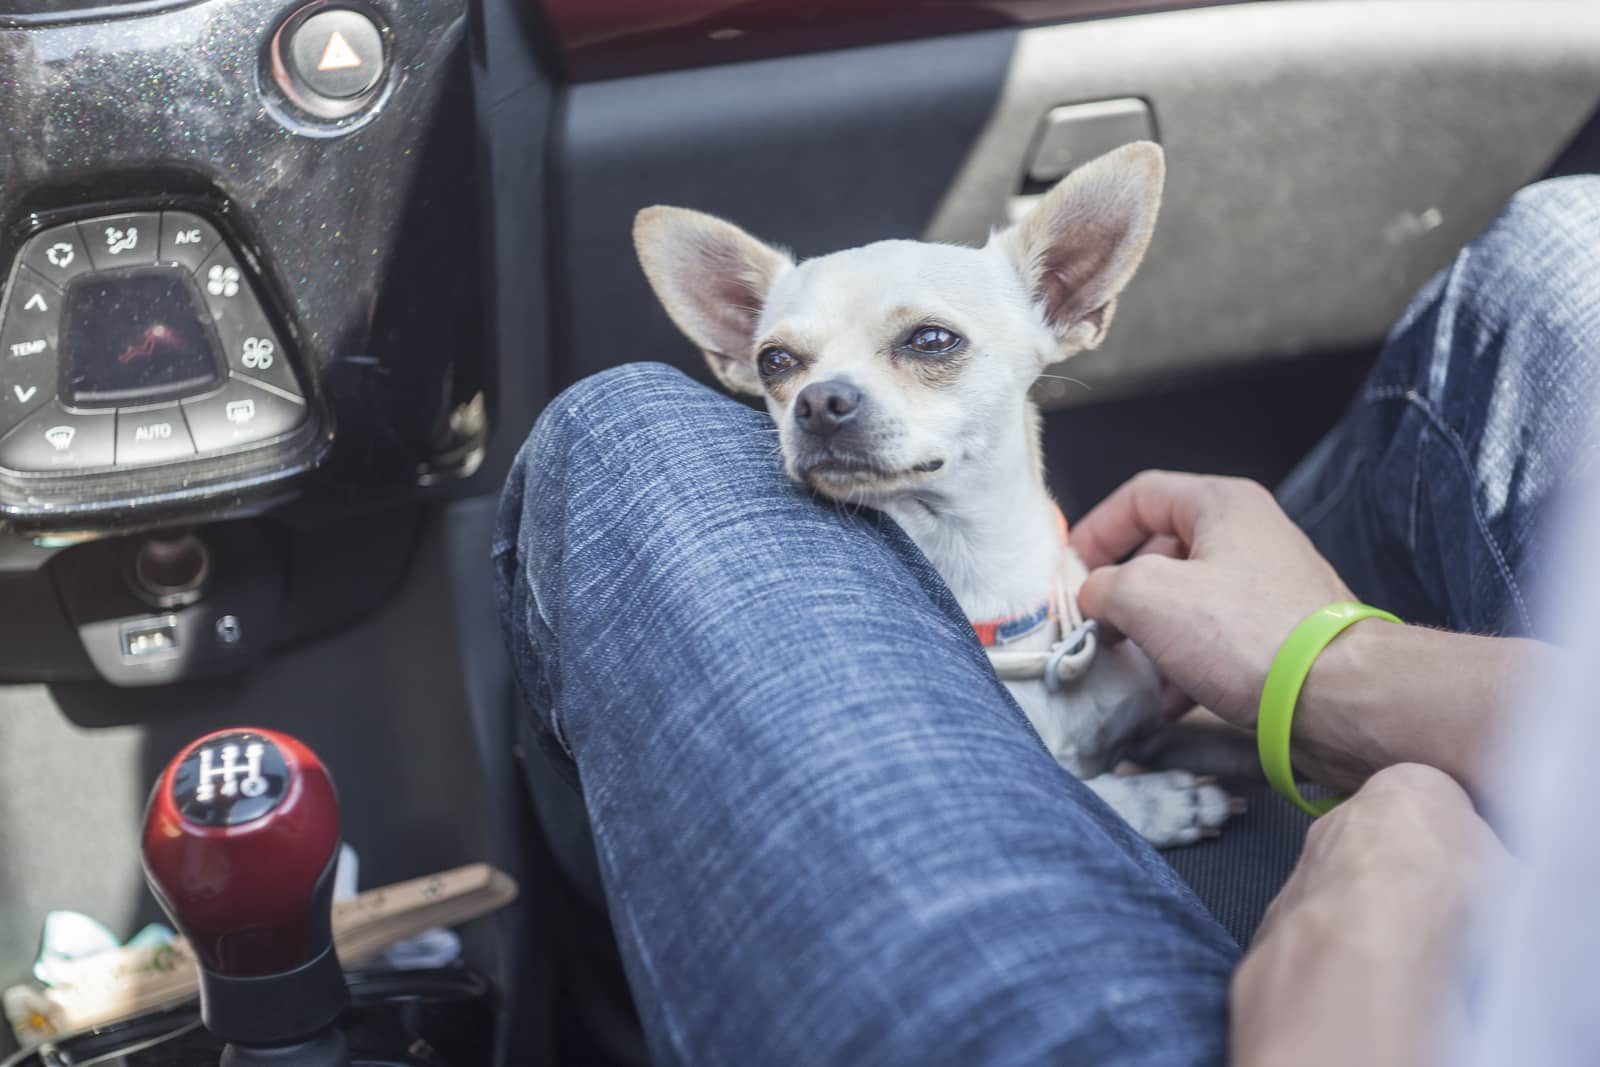 White chihuahua on floor on passenger side of stick shift car leaning on seal and knee of mail passenger who is wearing jeans and has a green bracelet.